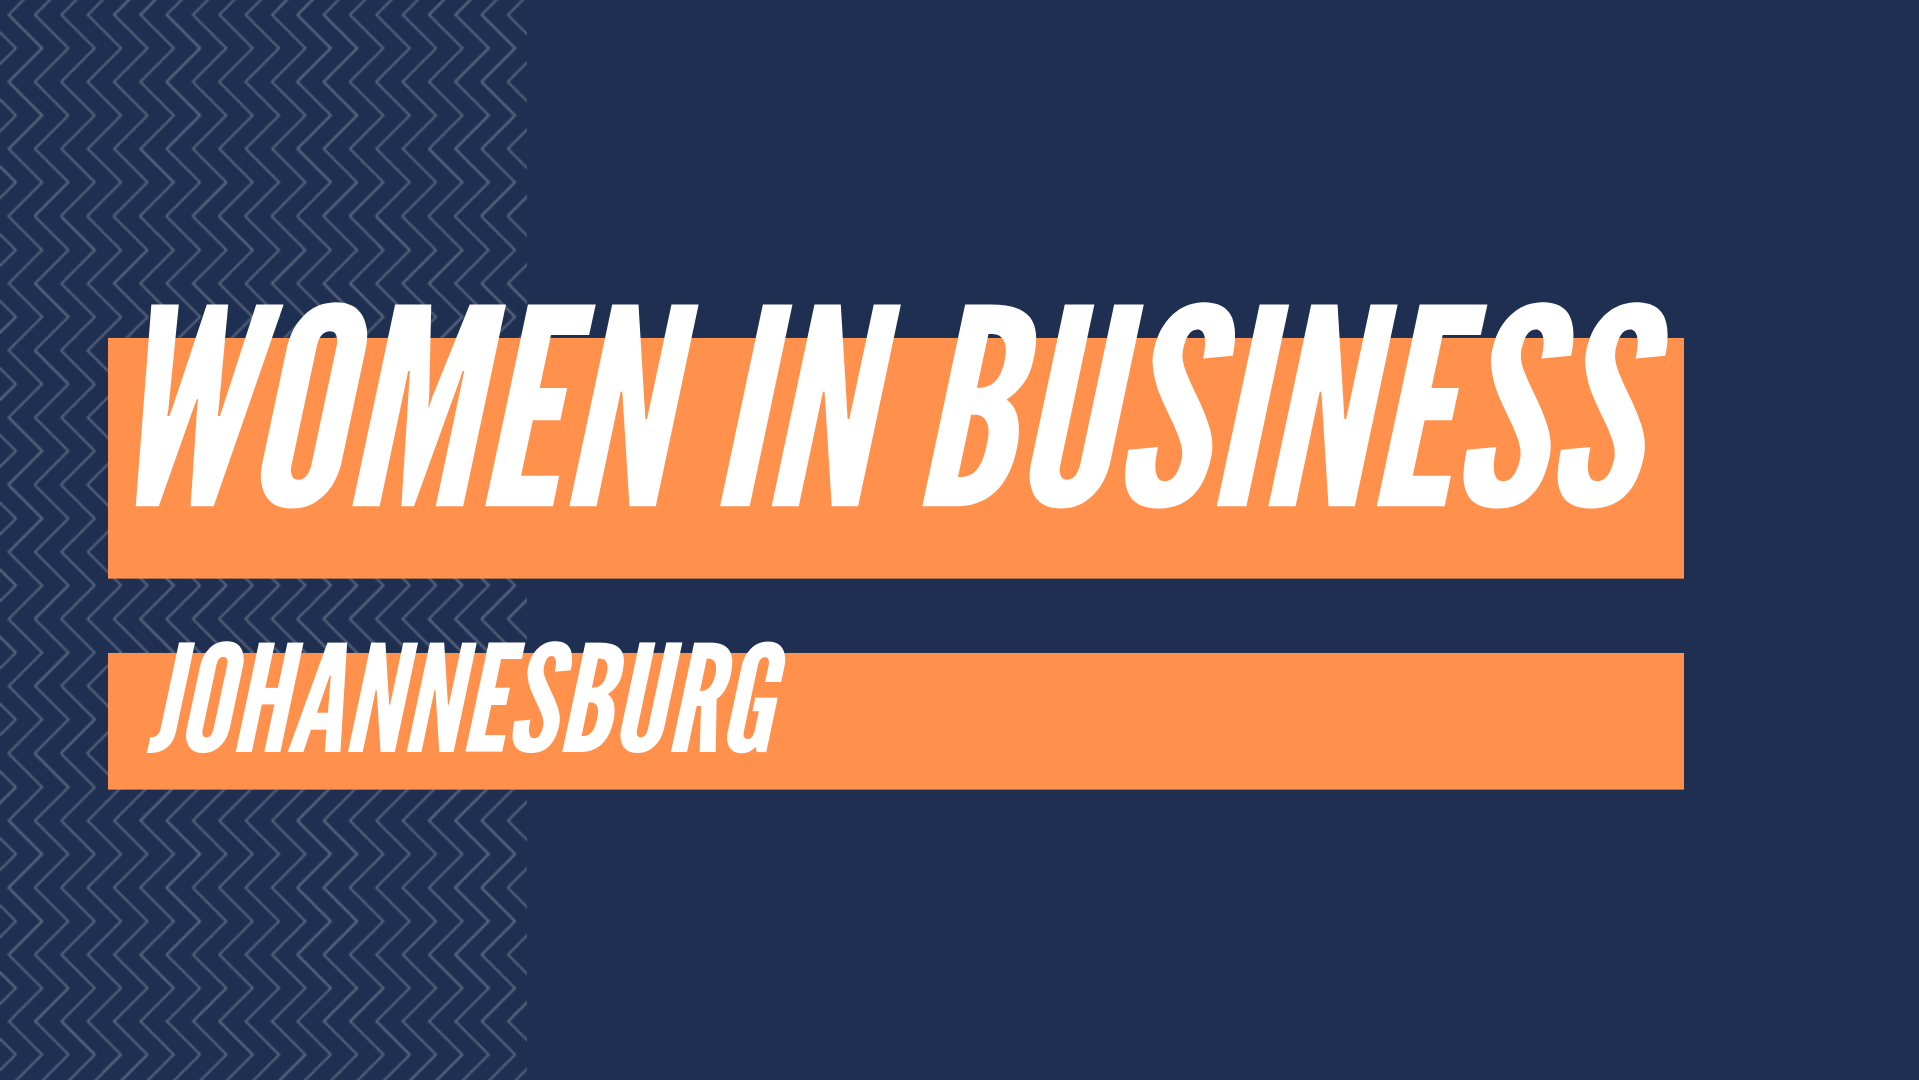 Women in Business Johannesburg